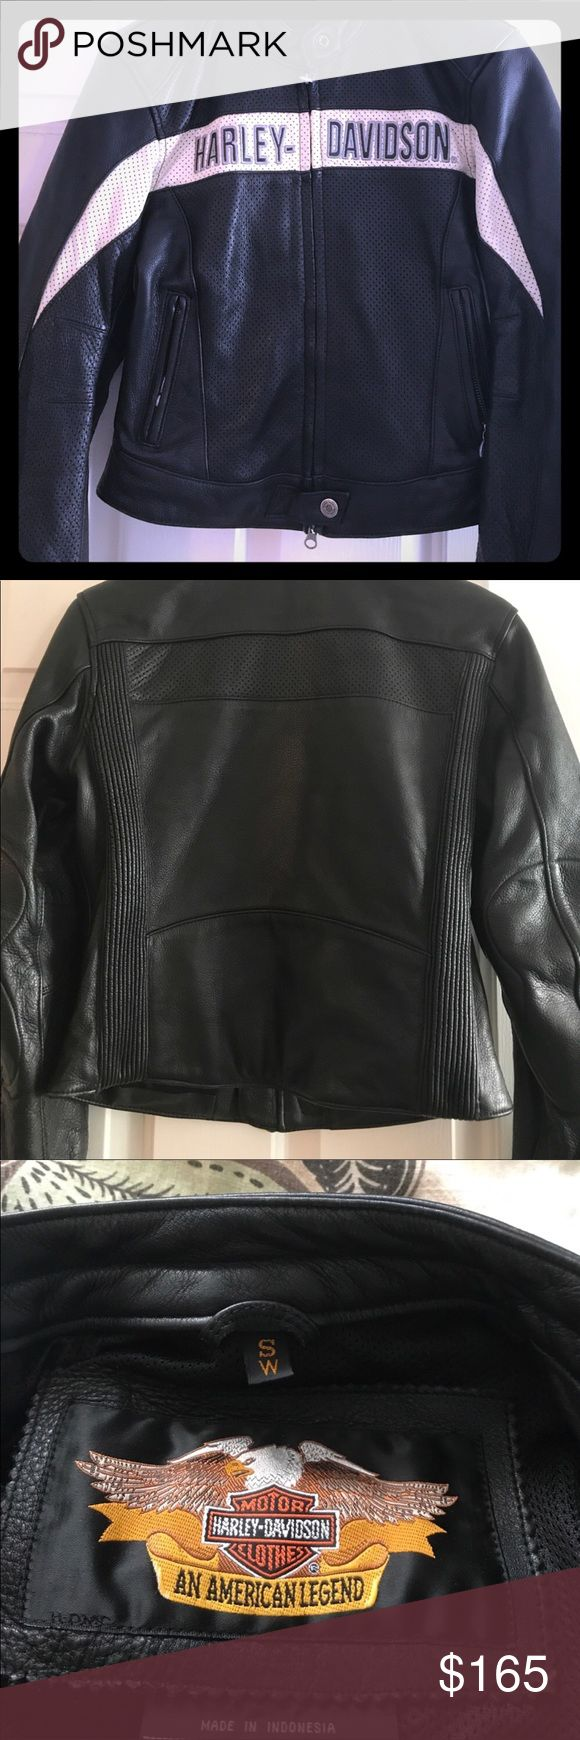 🔥Women's Harley Davidson Leather Jacket🔥 Women's HD leather jacket, size small. An absolute must if you ride or a passenger. Padded elbows, back zipper vents for airflow. This jacket is in pristine condition, no scuffs, fading, rips or tears to the leather. Only reasonable offers will be considered. Harley-Davidson Jackets & Coats